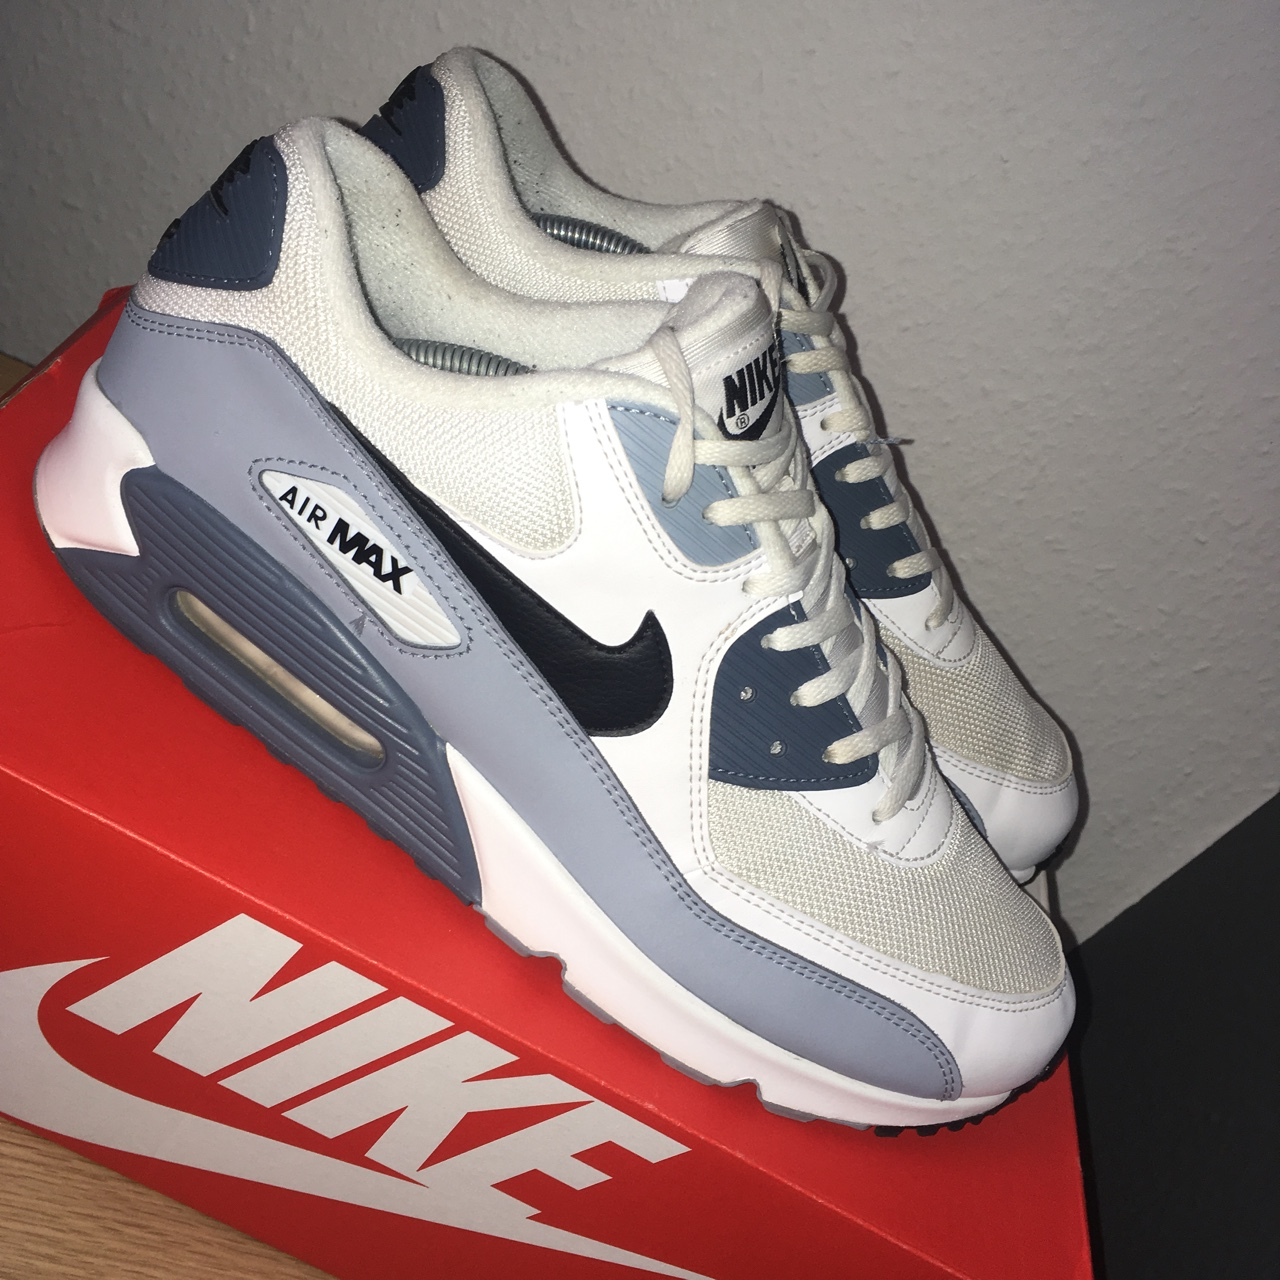 Nike Air max 90 new style Rtp £100 from jd sports Depop